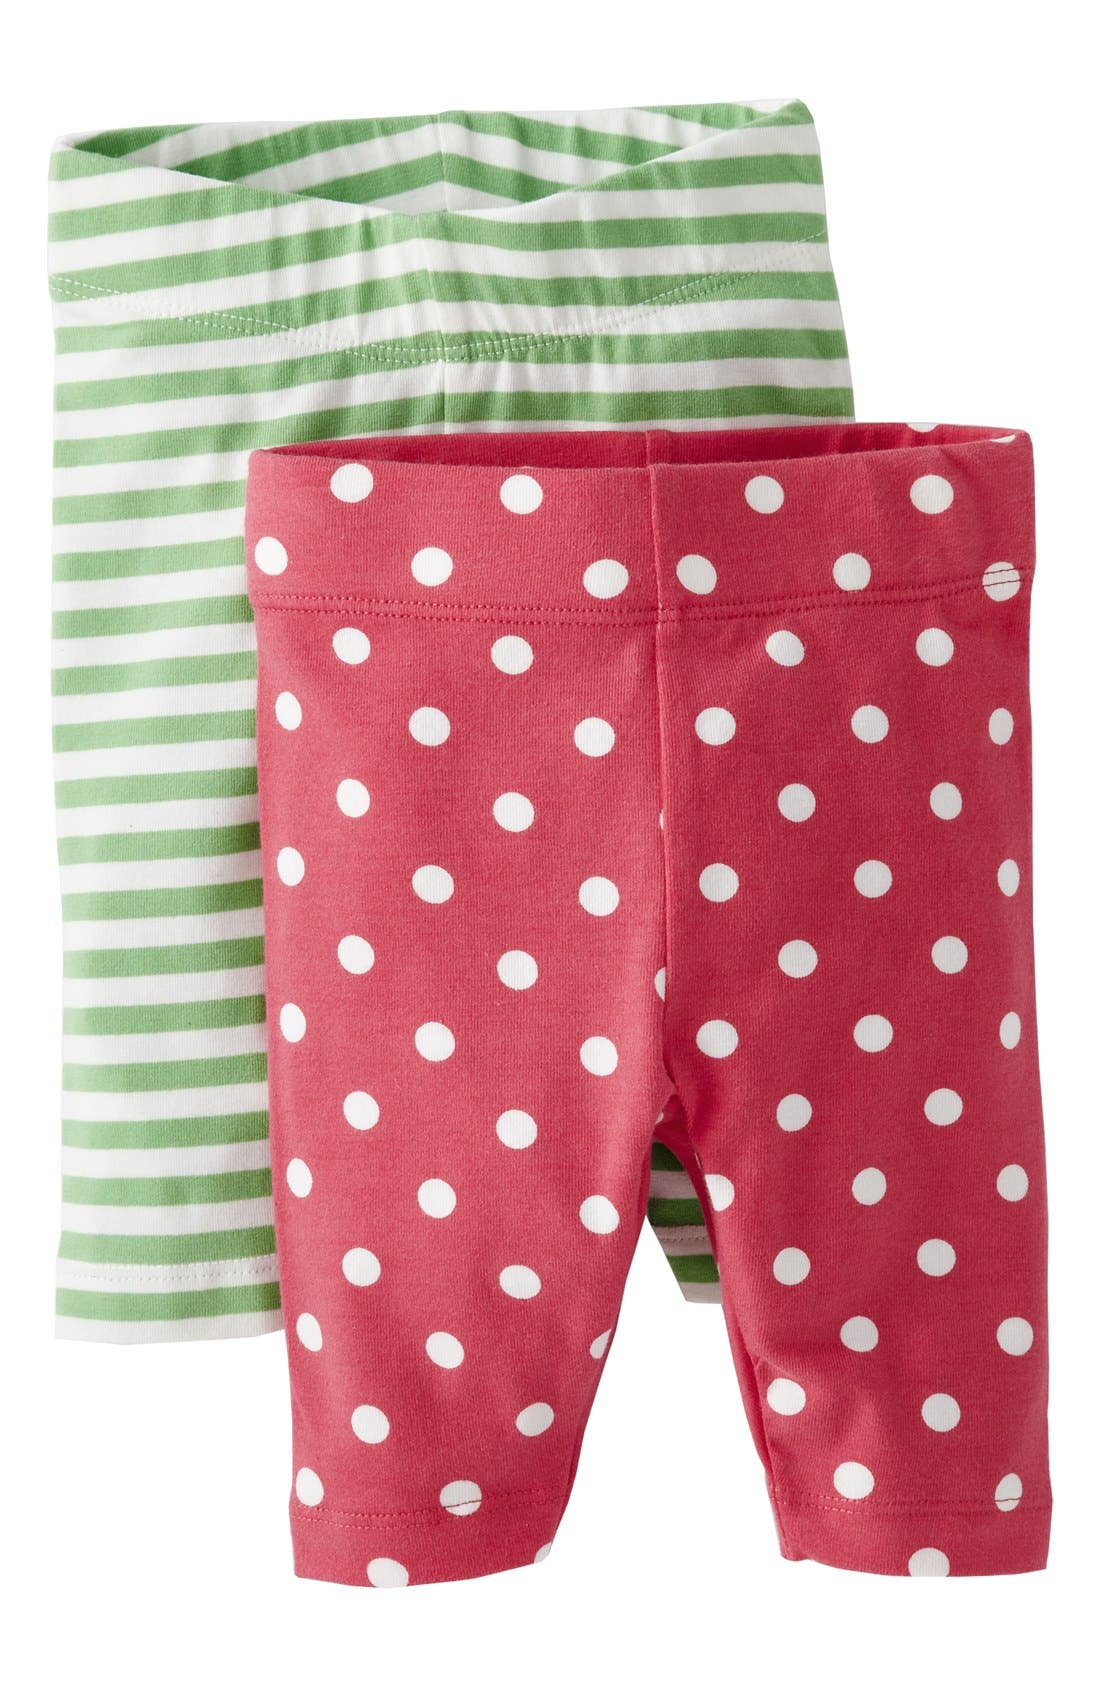 Main Image - Mini Boden Print Leggings (Baby Girls) (Set of 2)